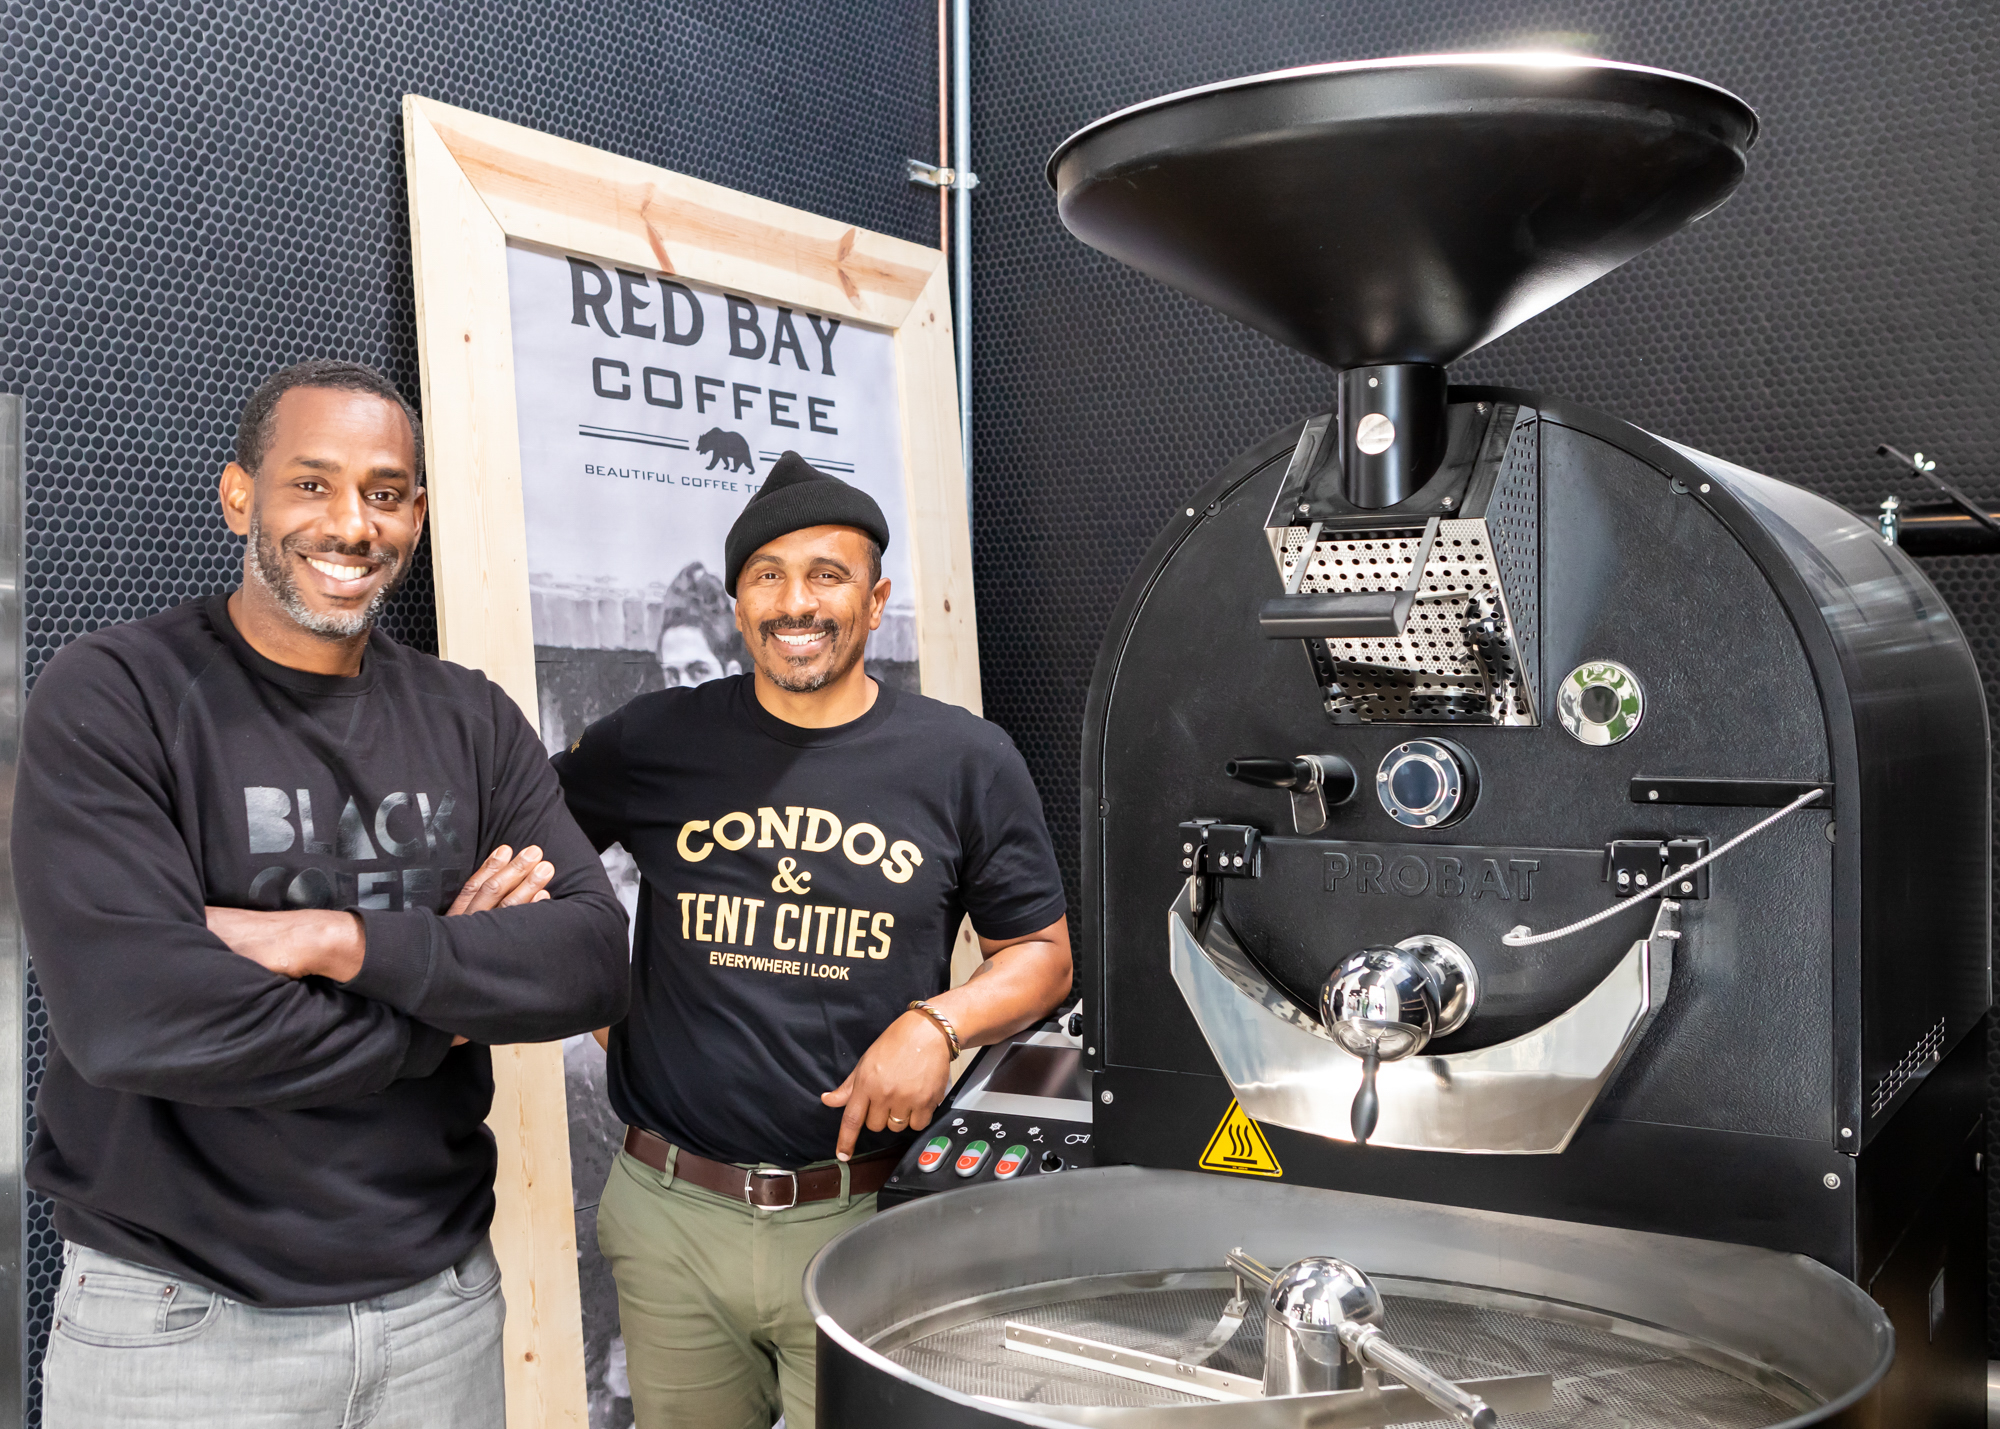 Left, Tijan Watt. with Red Bay Coffee Founder Keba Konte, right, in front of a roaster